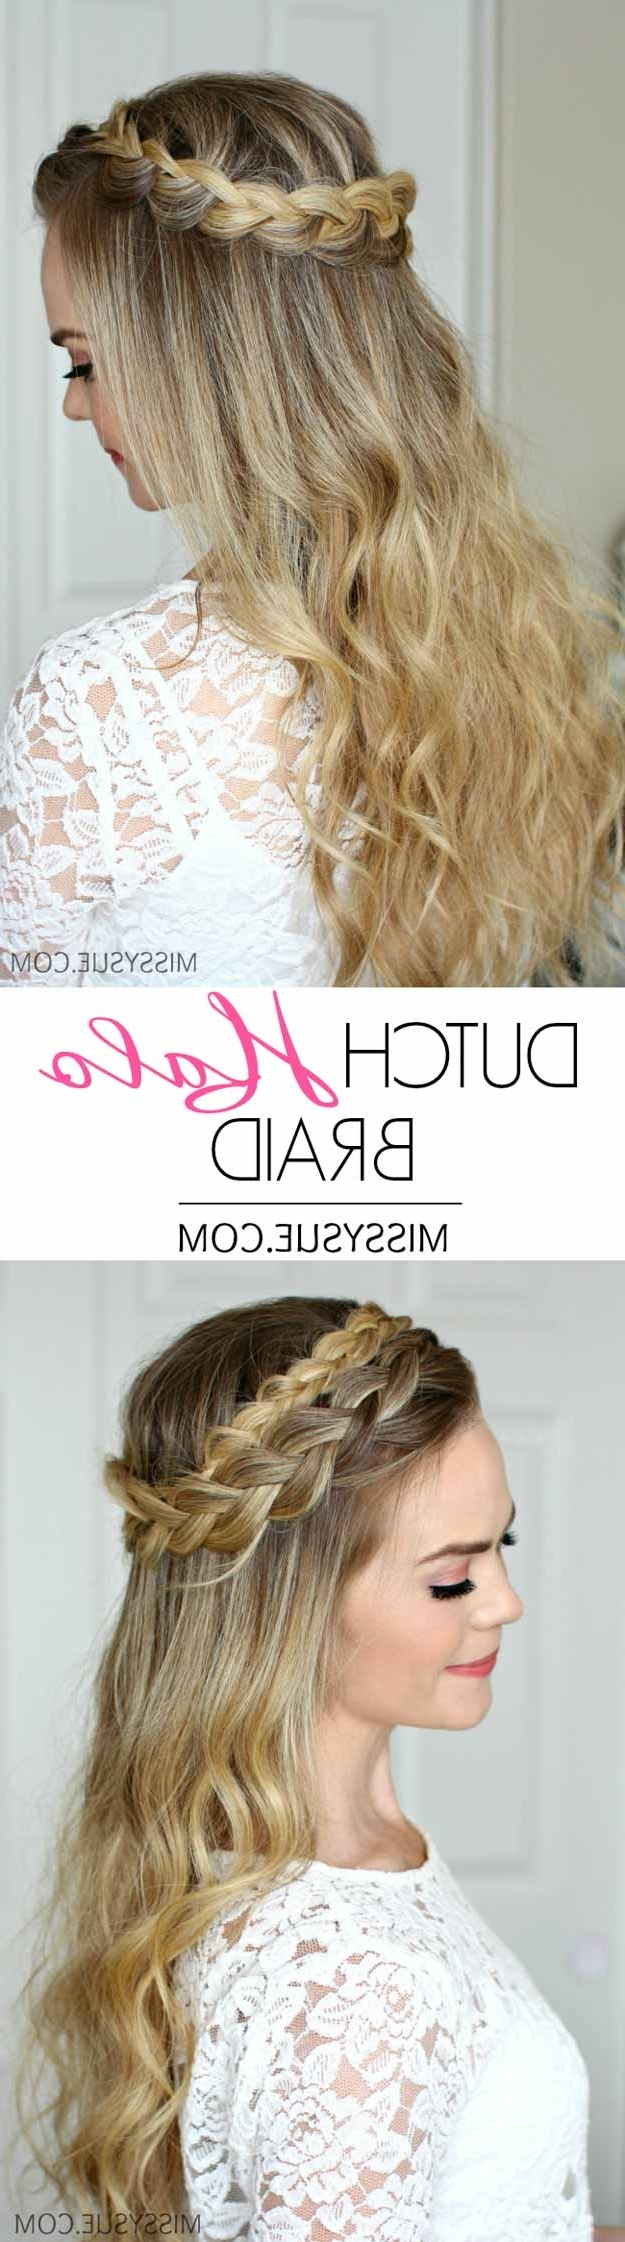 31 Wedding Hairstyles For Long Hair – The Goddess Within Preferred Diy Wedding Guest Hairstyles (View 14 of 15)